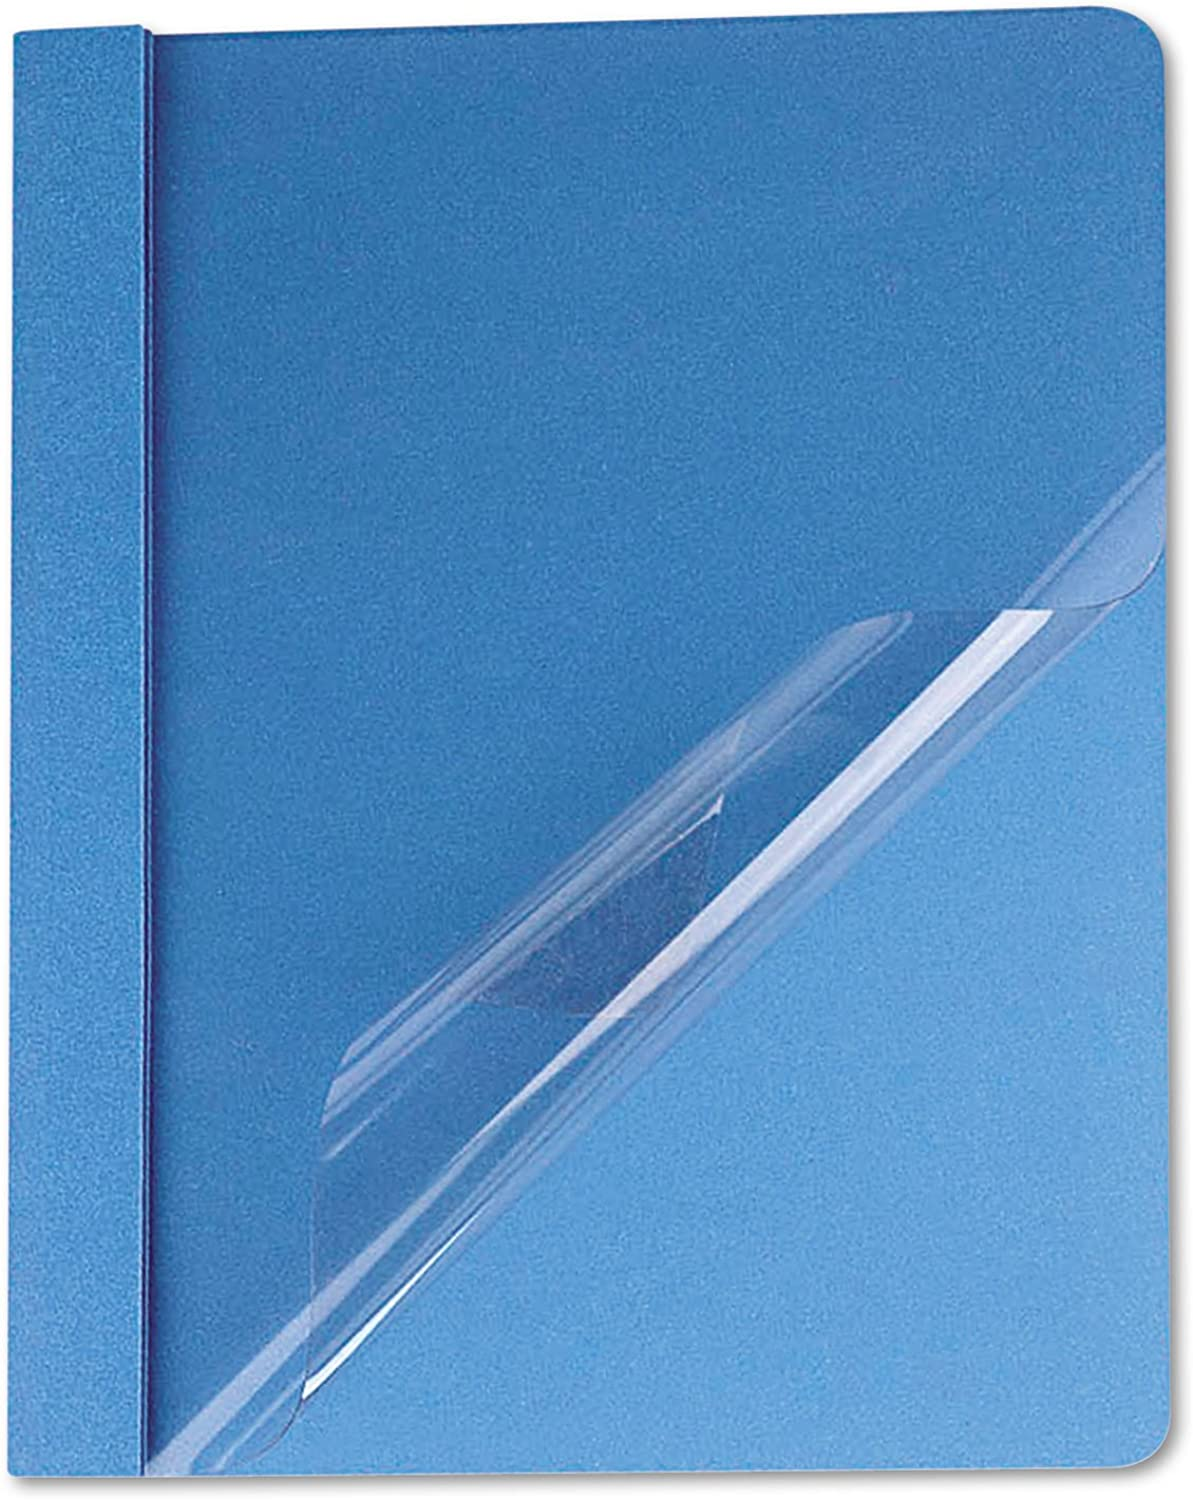 Universal 57121 Clear Front Report Cover, Tang Fasteners, Letter Größe, Light Blau, 25 Box B00FE9WE6K | Haltbar